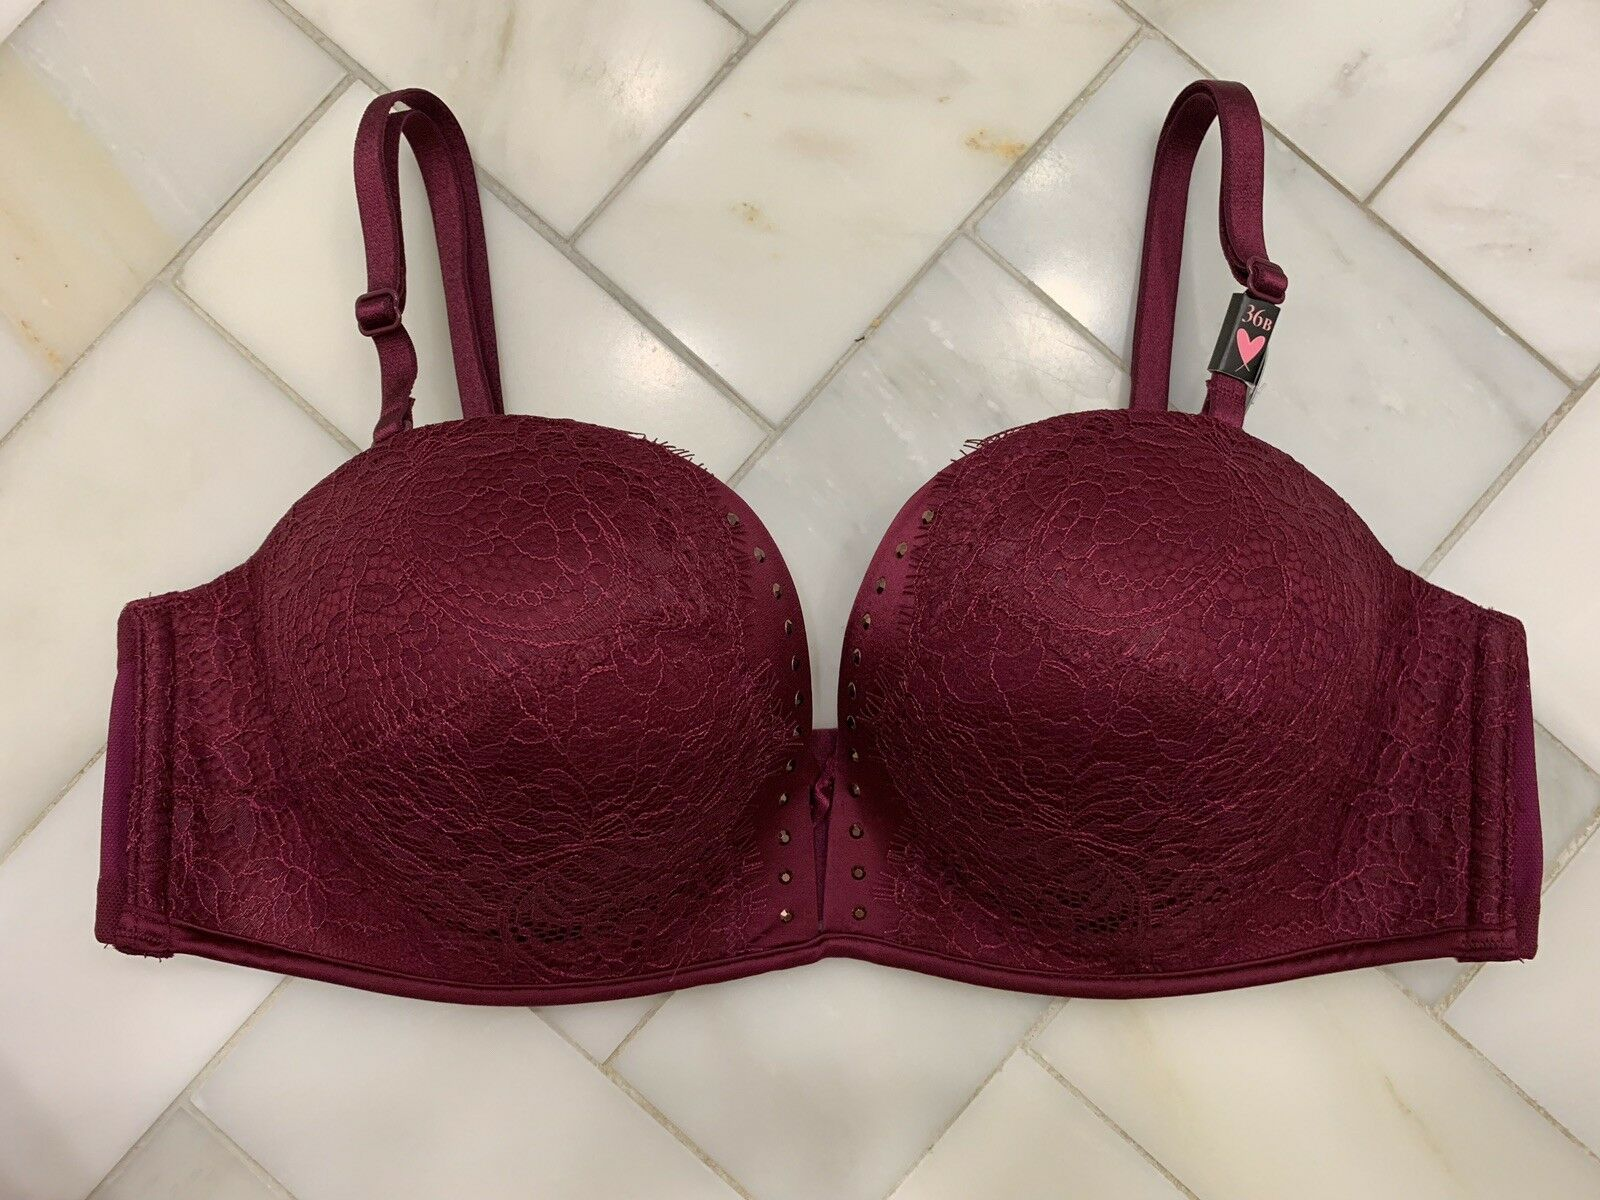 NWT Victoria's Secret Bombshell Multi-way Push-up Bra 36B Berry Studs Current